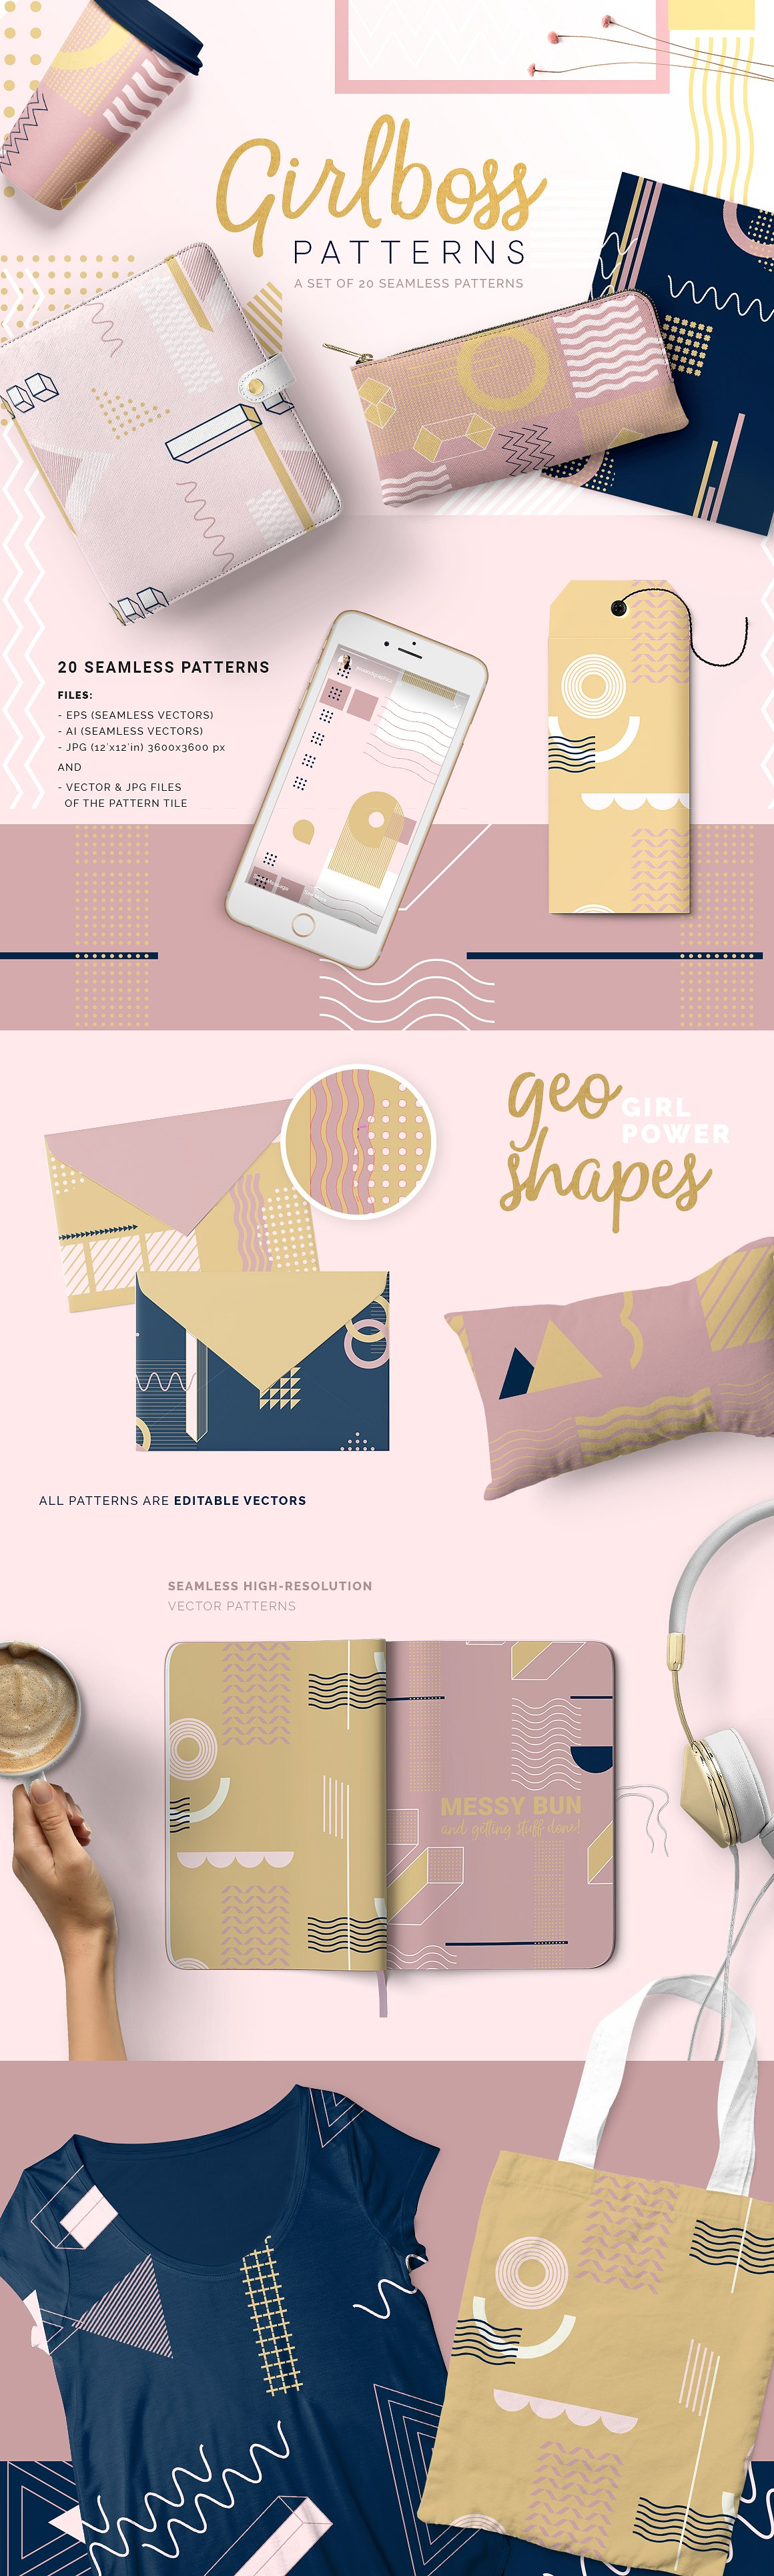 Girlboss Graphic Patterns by Youandigraphics